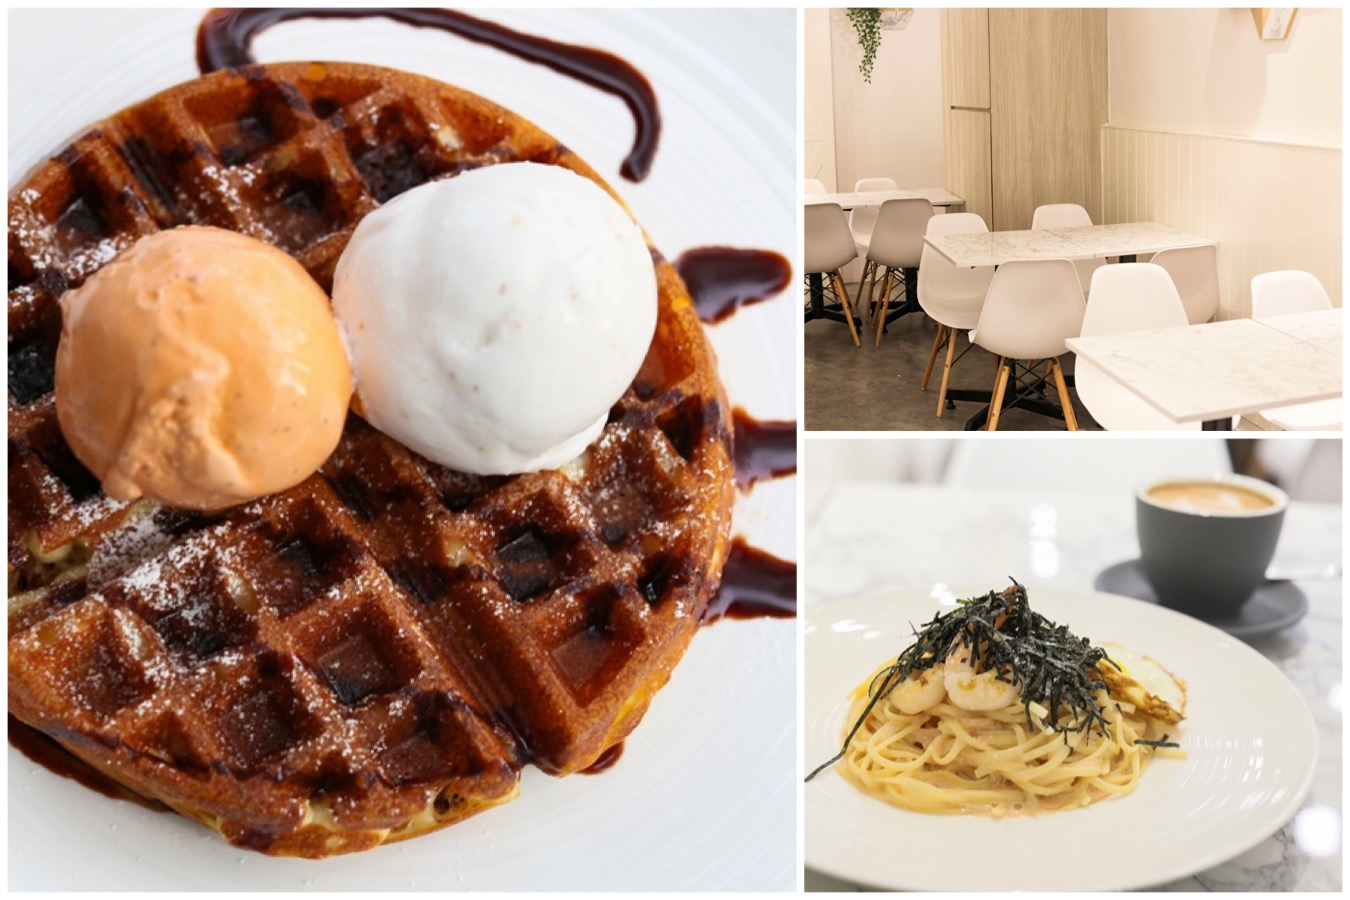 Carrara Café - Ice Cream Cafe Serving Mentaiko Pasta And Marmite Fried Chicken Waffles. At Jalan Bukit Merah